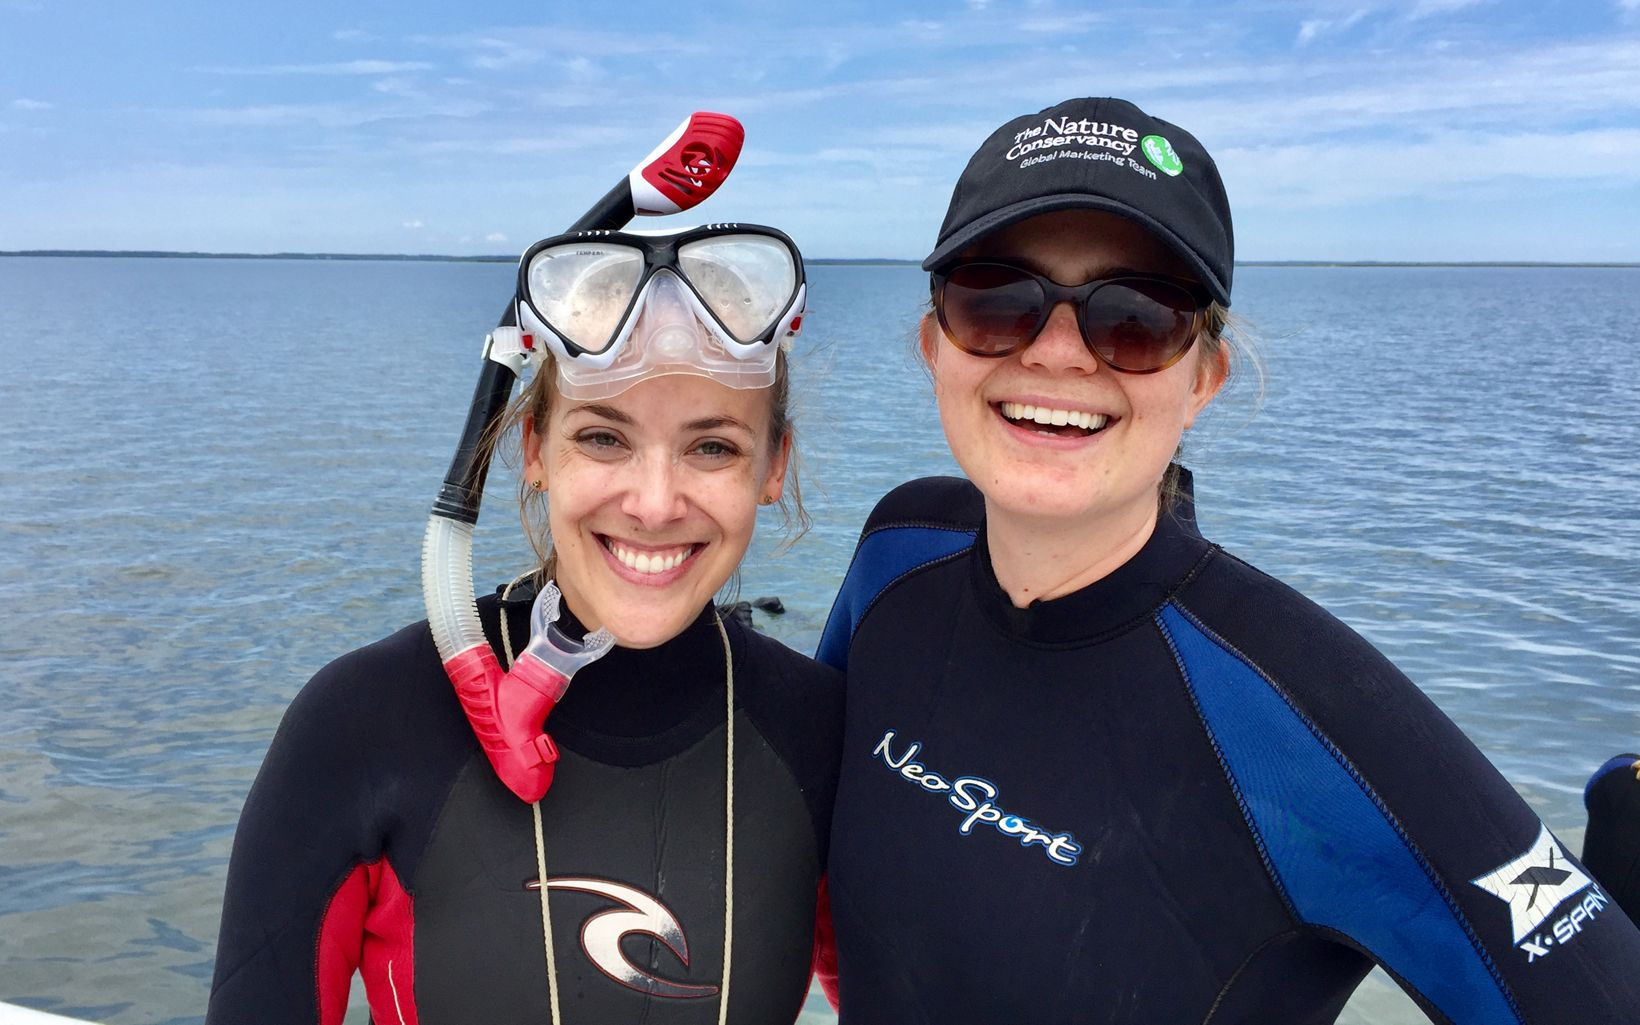 Maryland/DC's Benay Brotman and Bridget Moynihan suited up for eelgrass collection off Oyster, VA, May 2019.